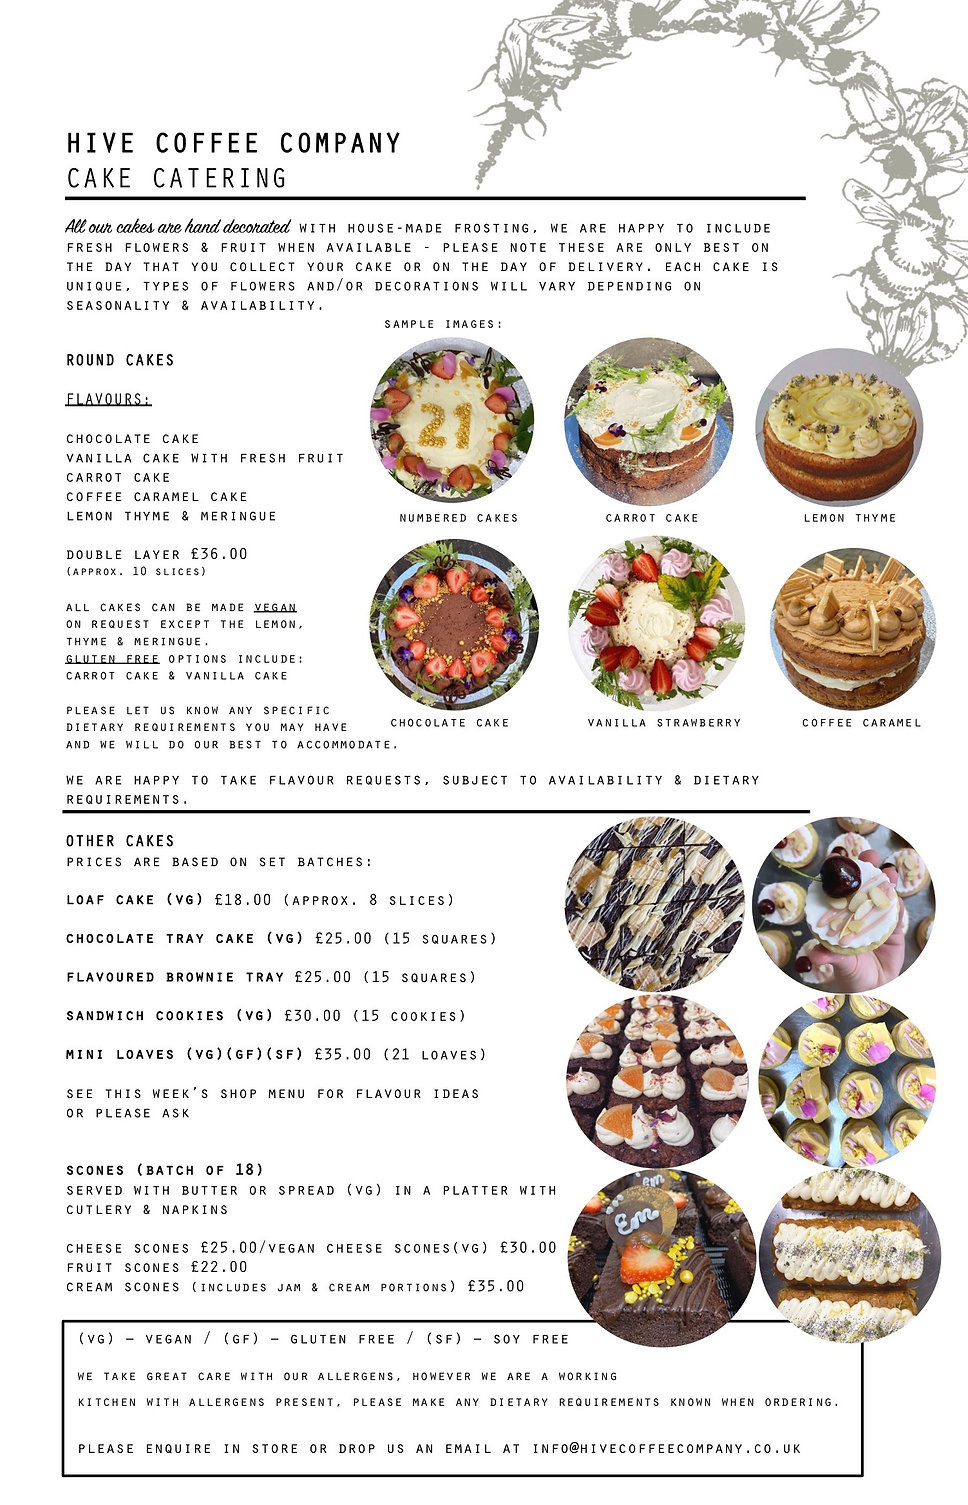 Hive Cake Catering Price List 2020.jpg